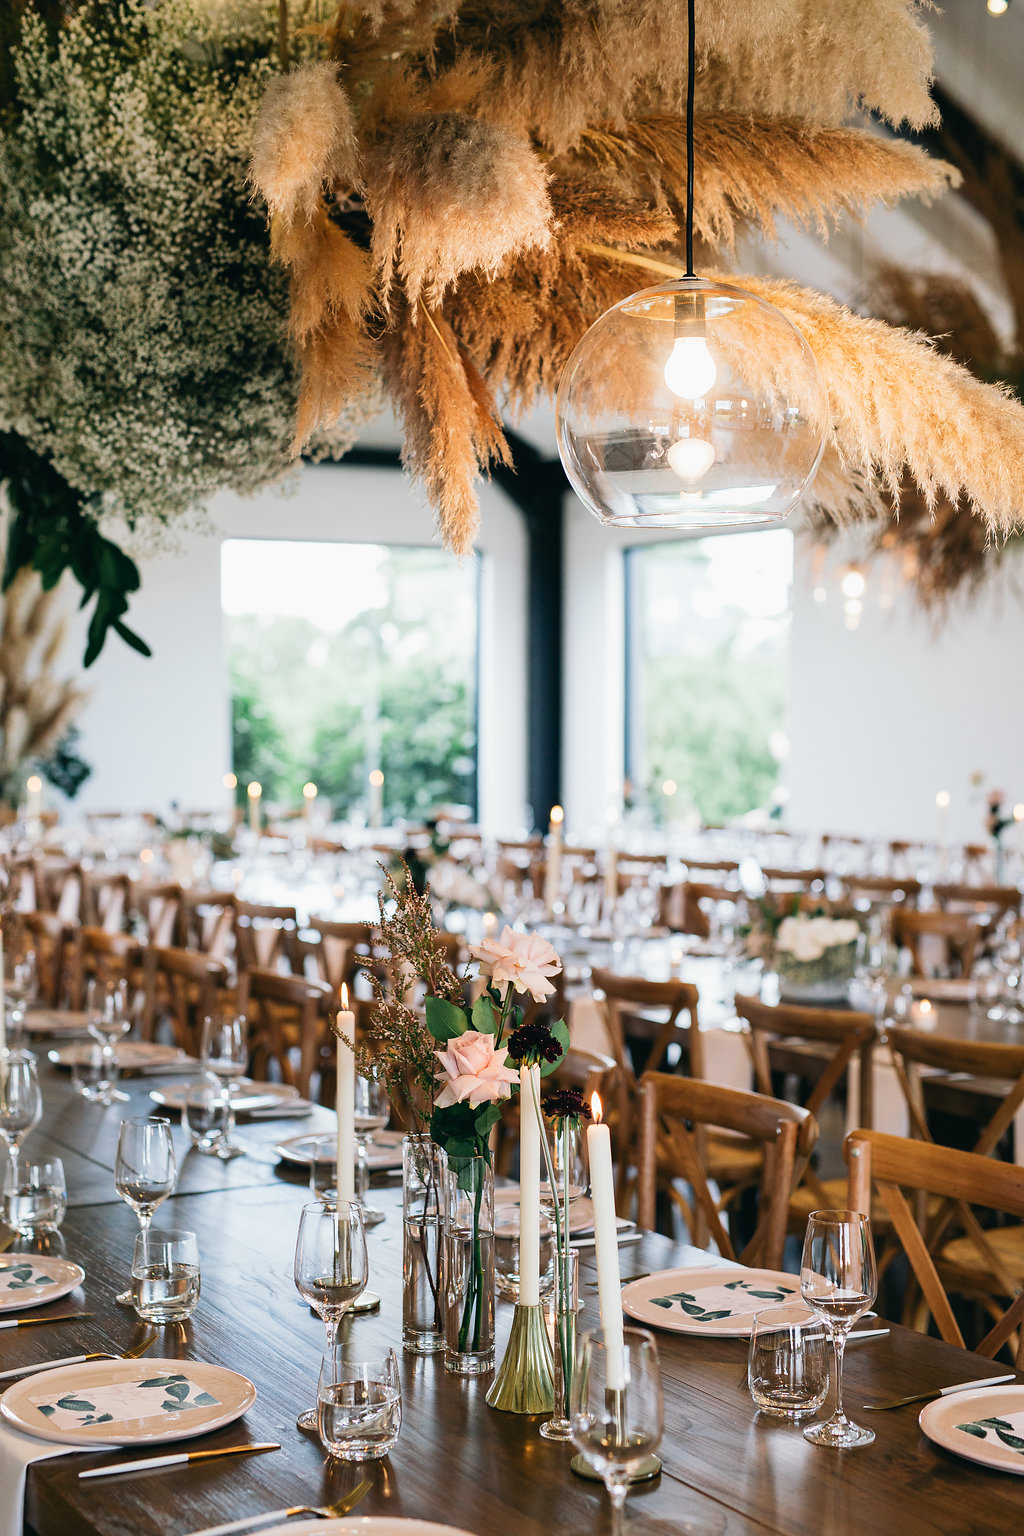 Real Wedding: Erin + Michael, The Orchard Estate Byron Bay Wedding | Styled by The Events Lounge, Byron Bay Wedding Planner